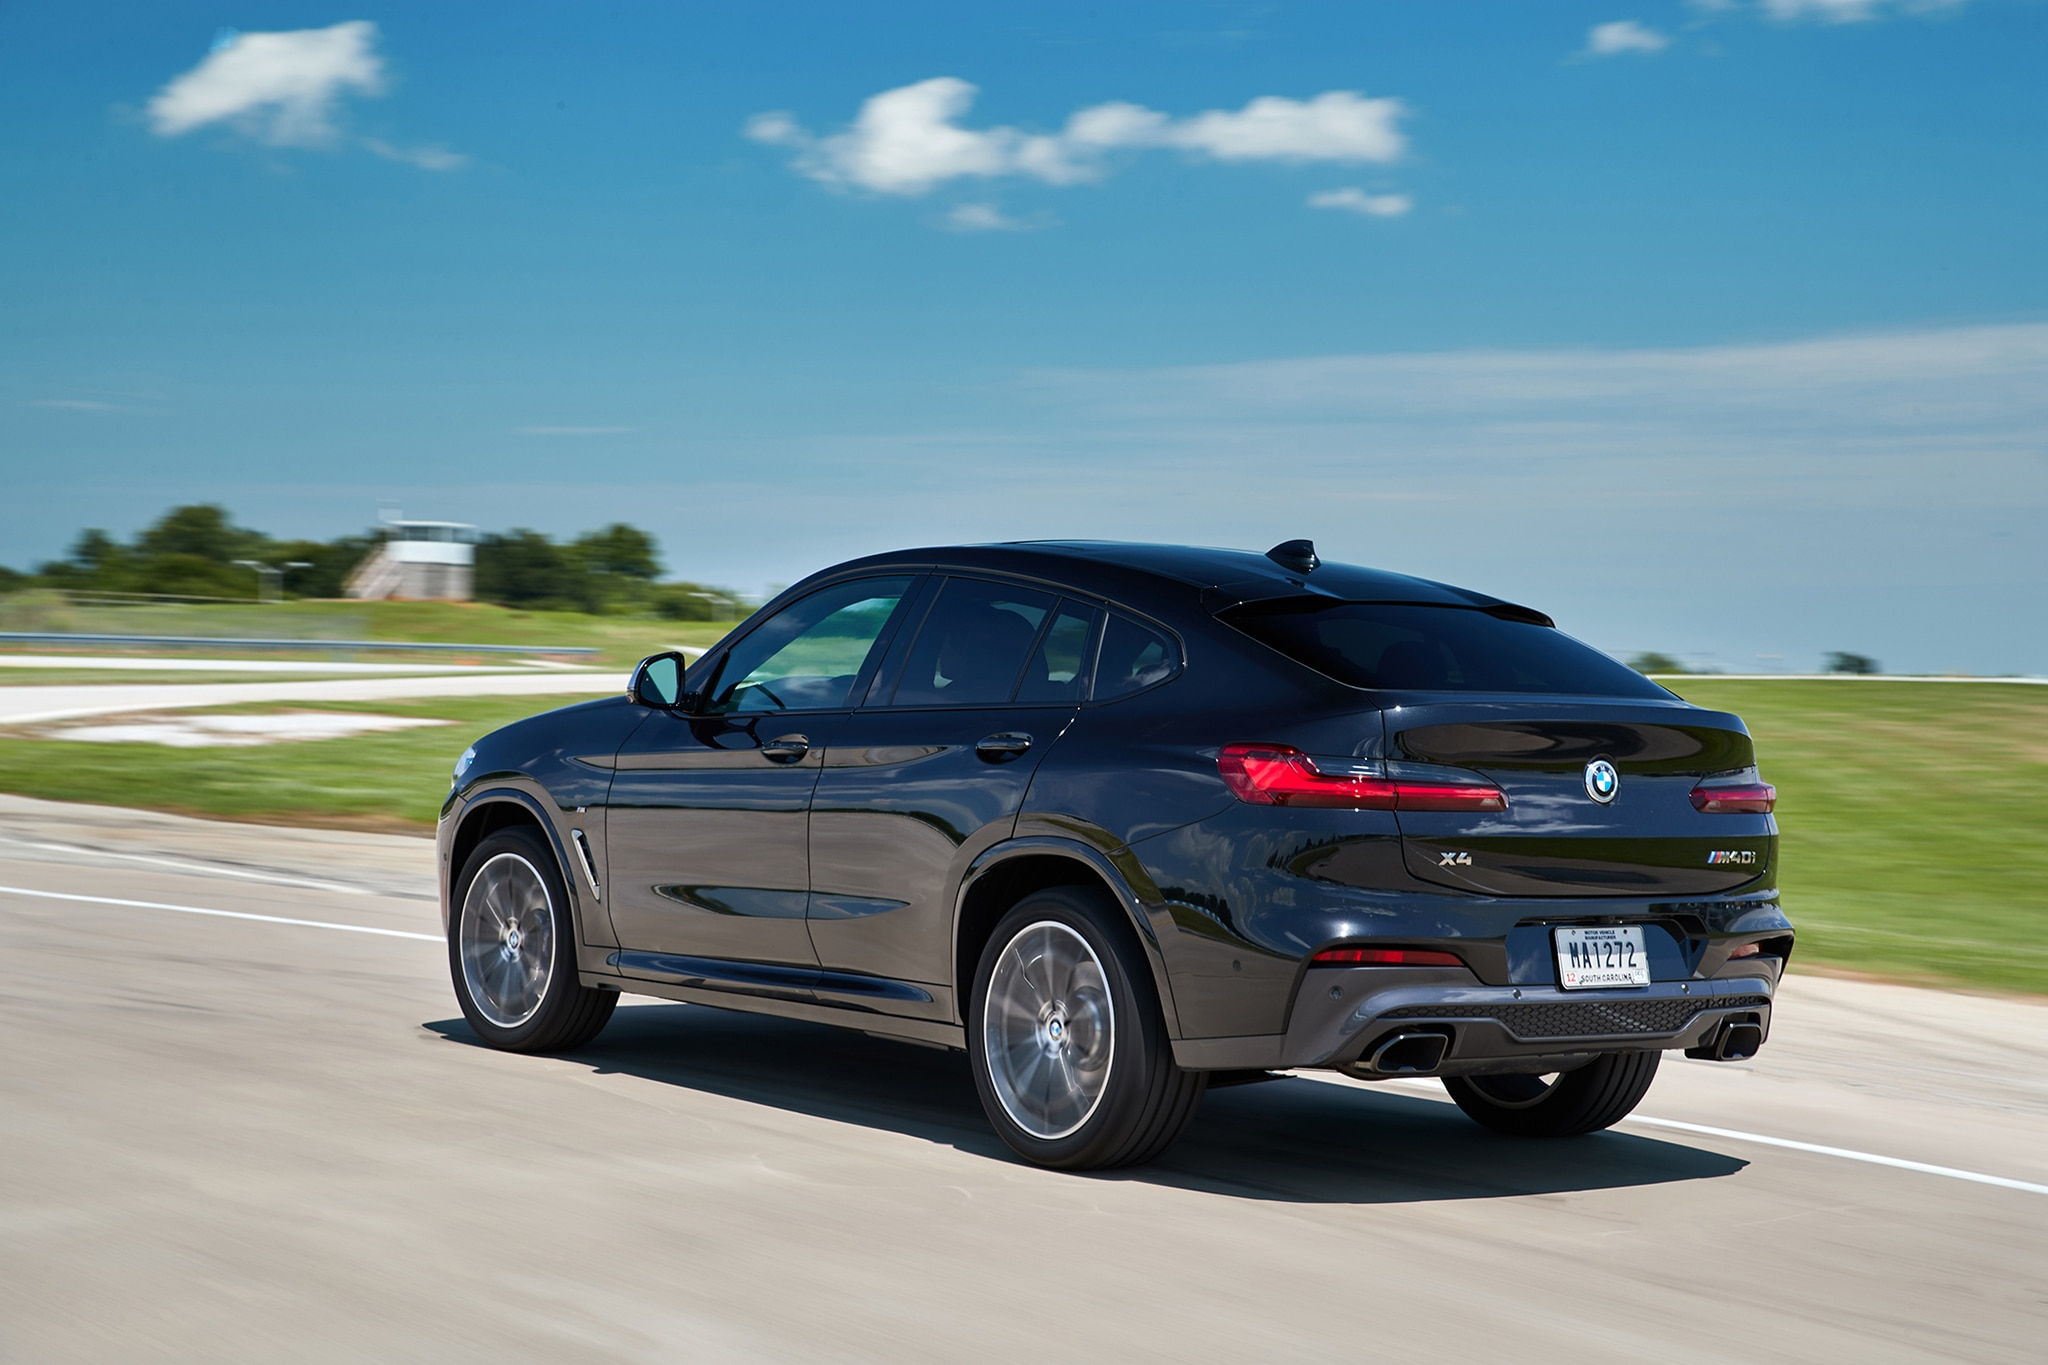 2019 bmw x4 first drive review automobile magazine. Black Bedroom Furniture Sets. Home Design Ideas